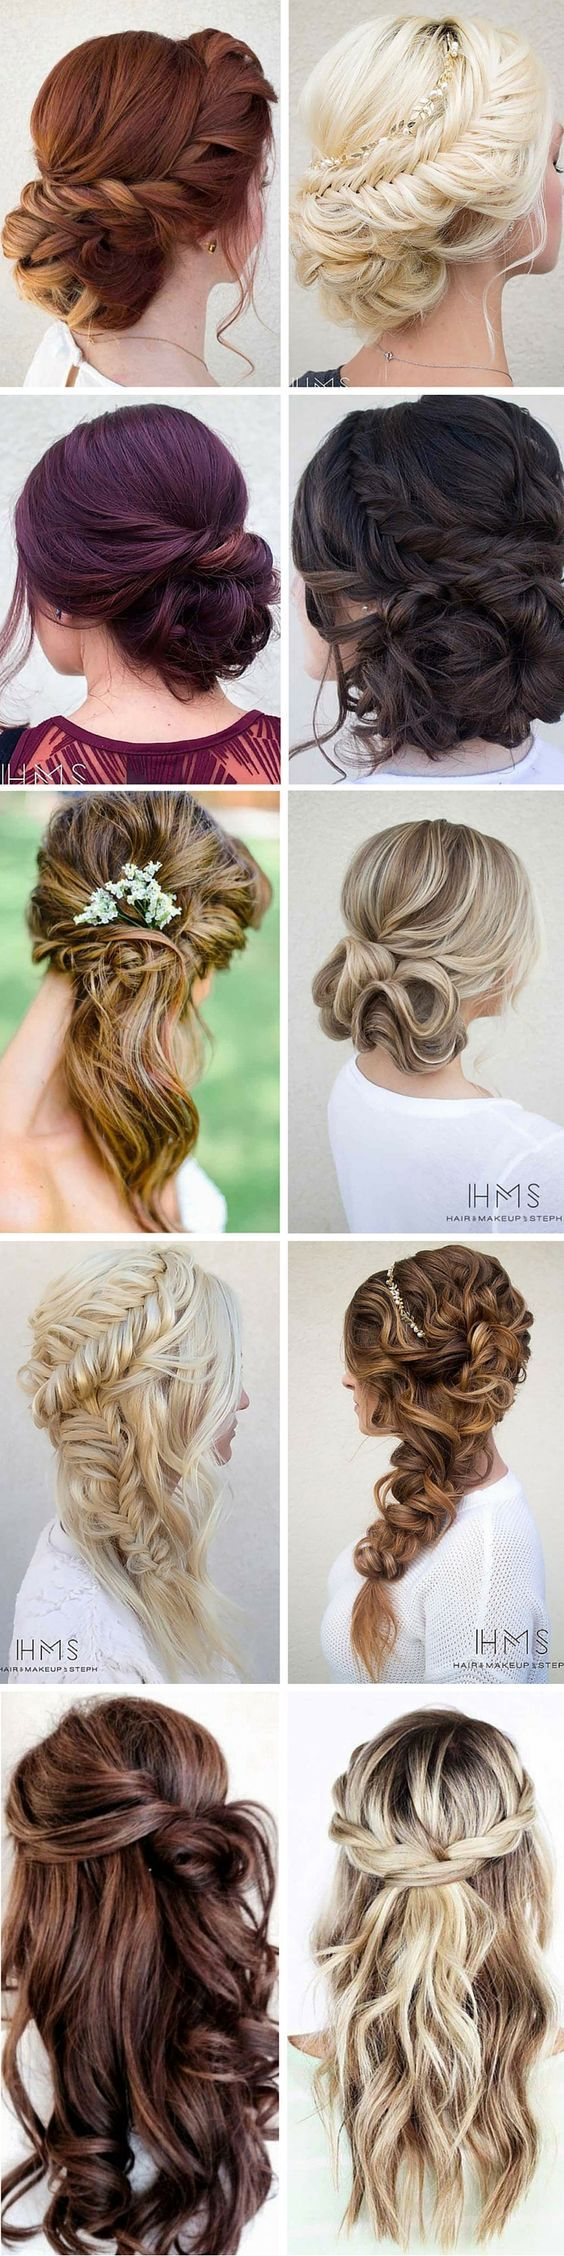 1000 Ides Sur Le Thme Chignon En Queue De Poisson Sur Pinterest